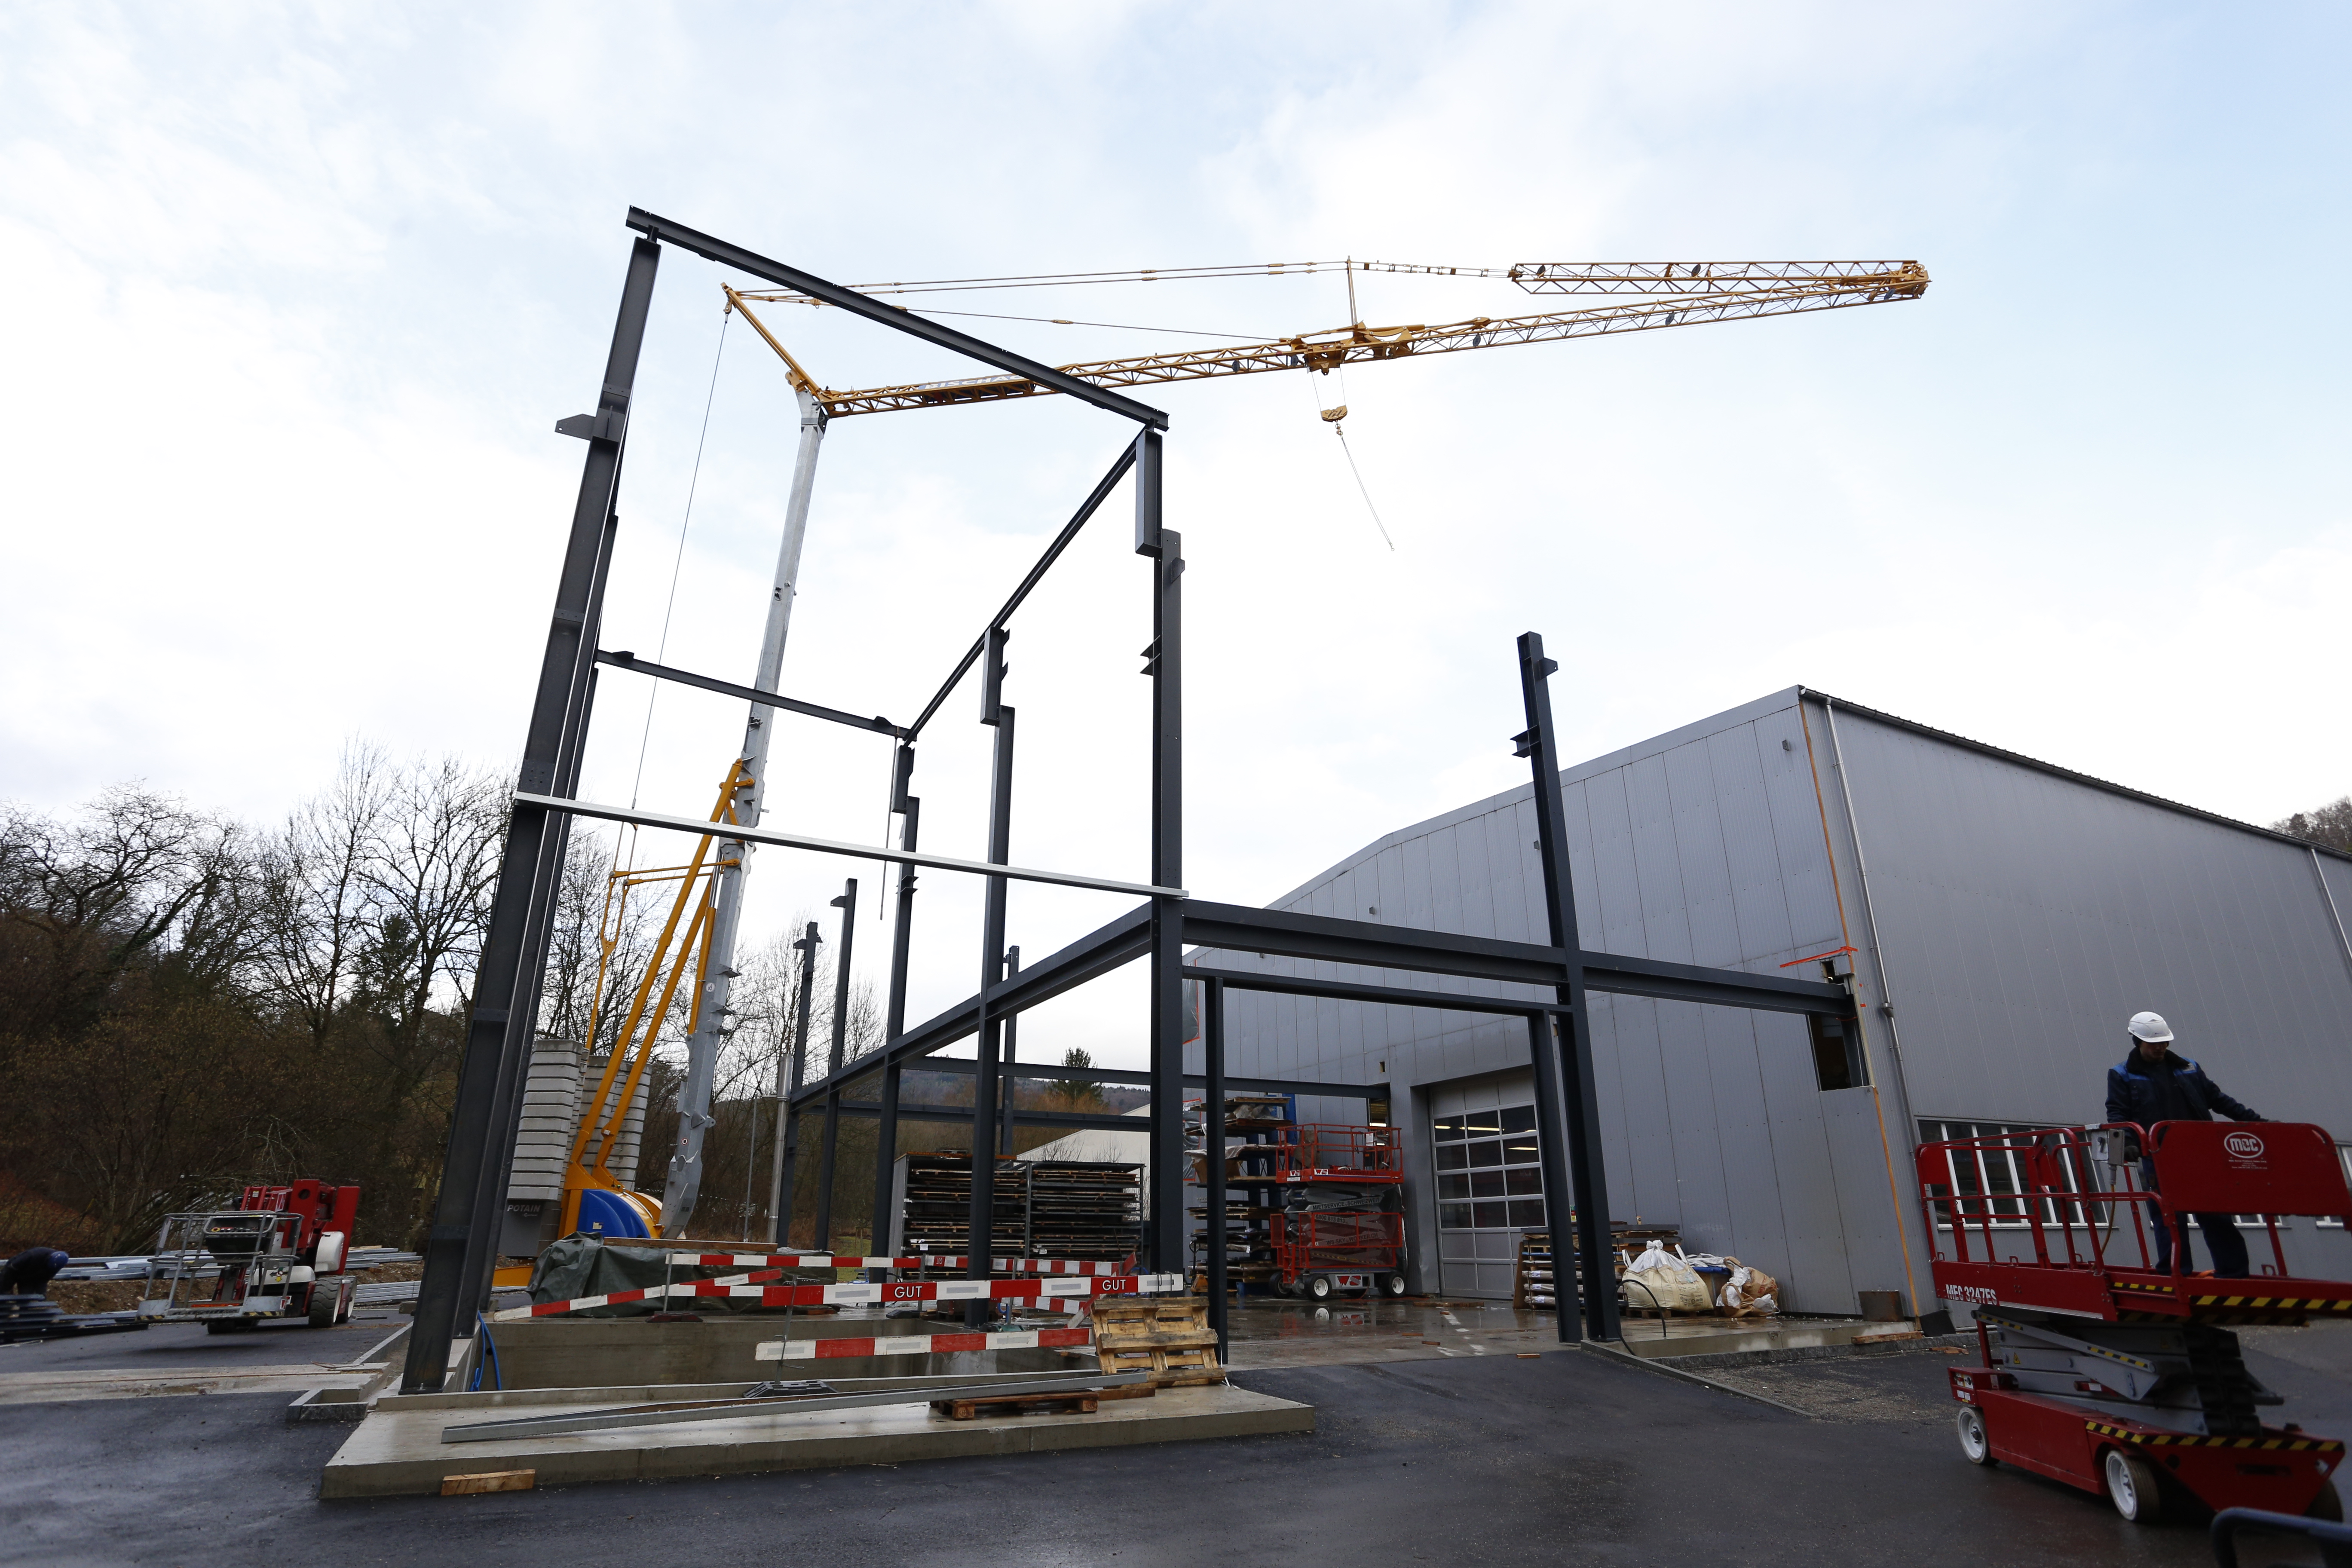 The erection of the in-house planned and built steel construction